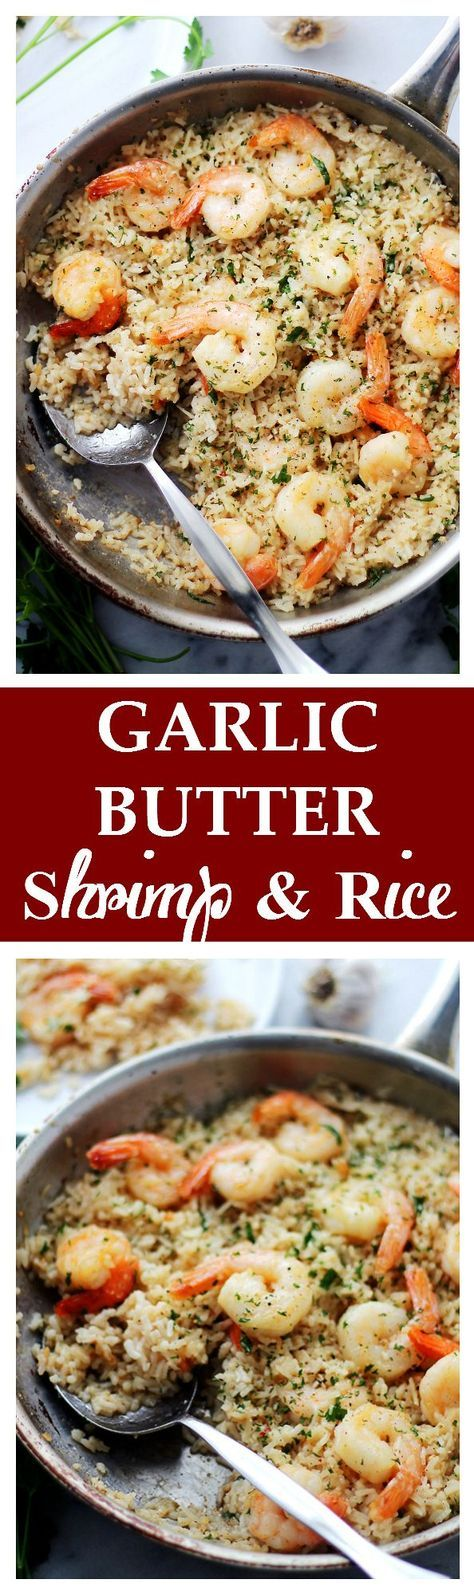 Garlic Butter Shrimp and Rice - Garlic Butter lends an amazing flavor to this speedy and incredibly delicious meal with Shrimp and Rice. Get the recipe on http://diethood.com